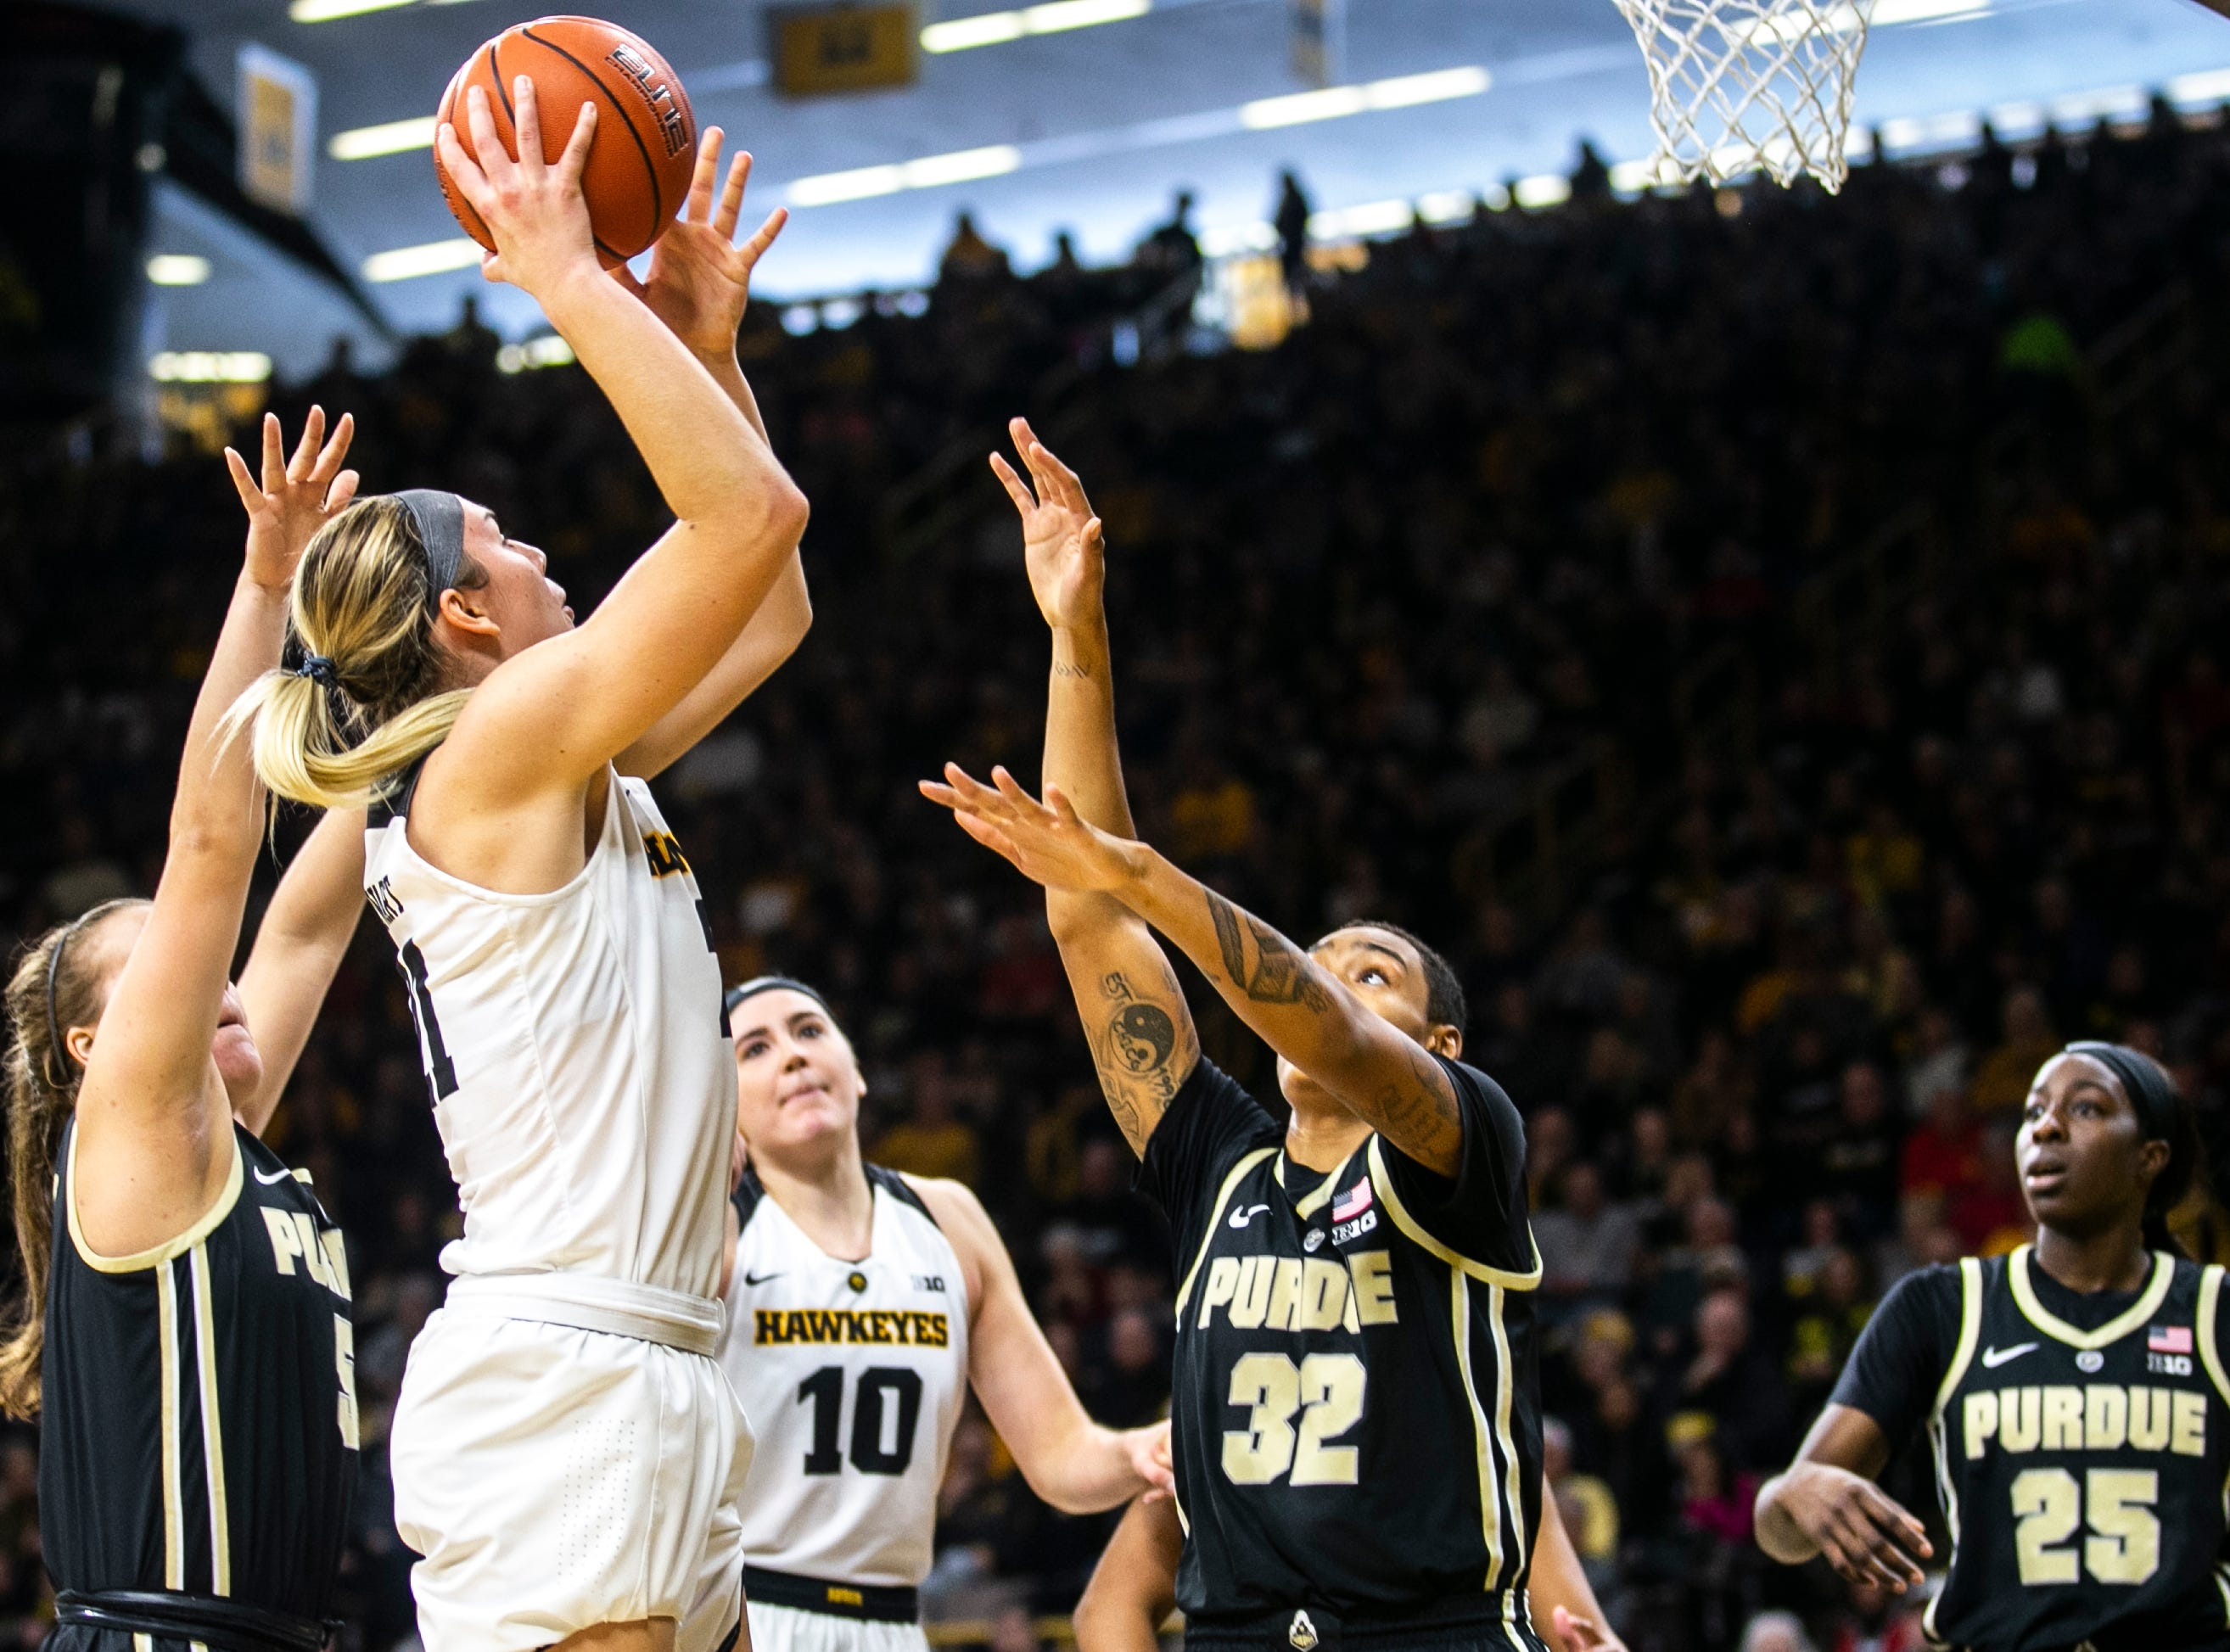 Iowa forward Hannah Stewart (21) drives to the basket past Purdue's Cassidy Hardin (5) and Ae'Rianna Harris (32) during a NCAA Big Ten Conference women's basketball game on Sunday, Jan. 27, 2019, at Carver-Hawkeye Arena in Iowa City, Iowa.